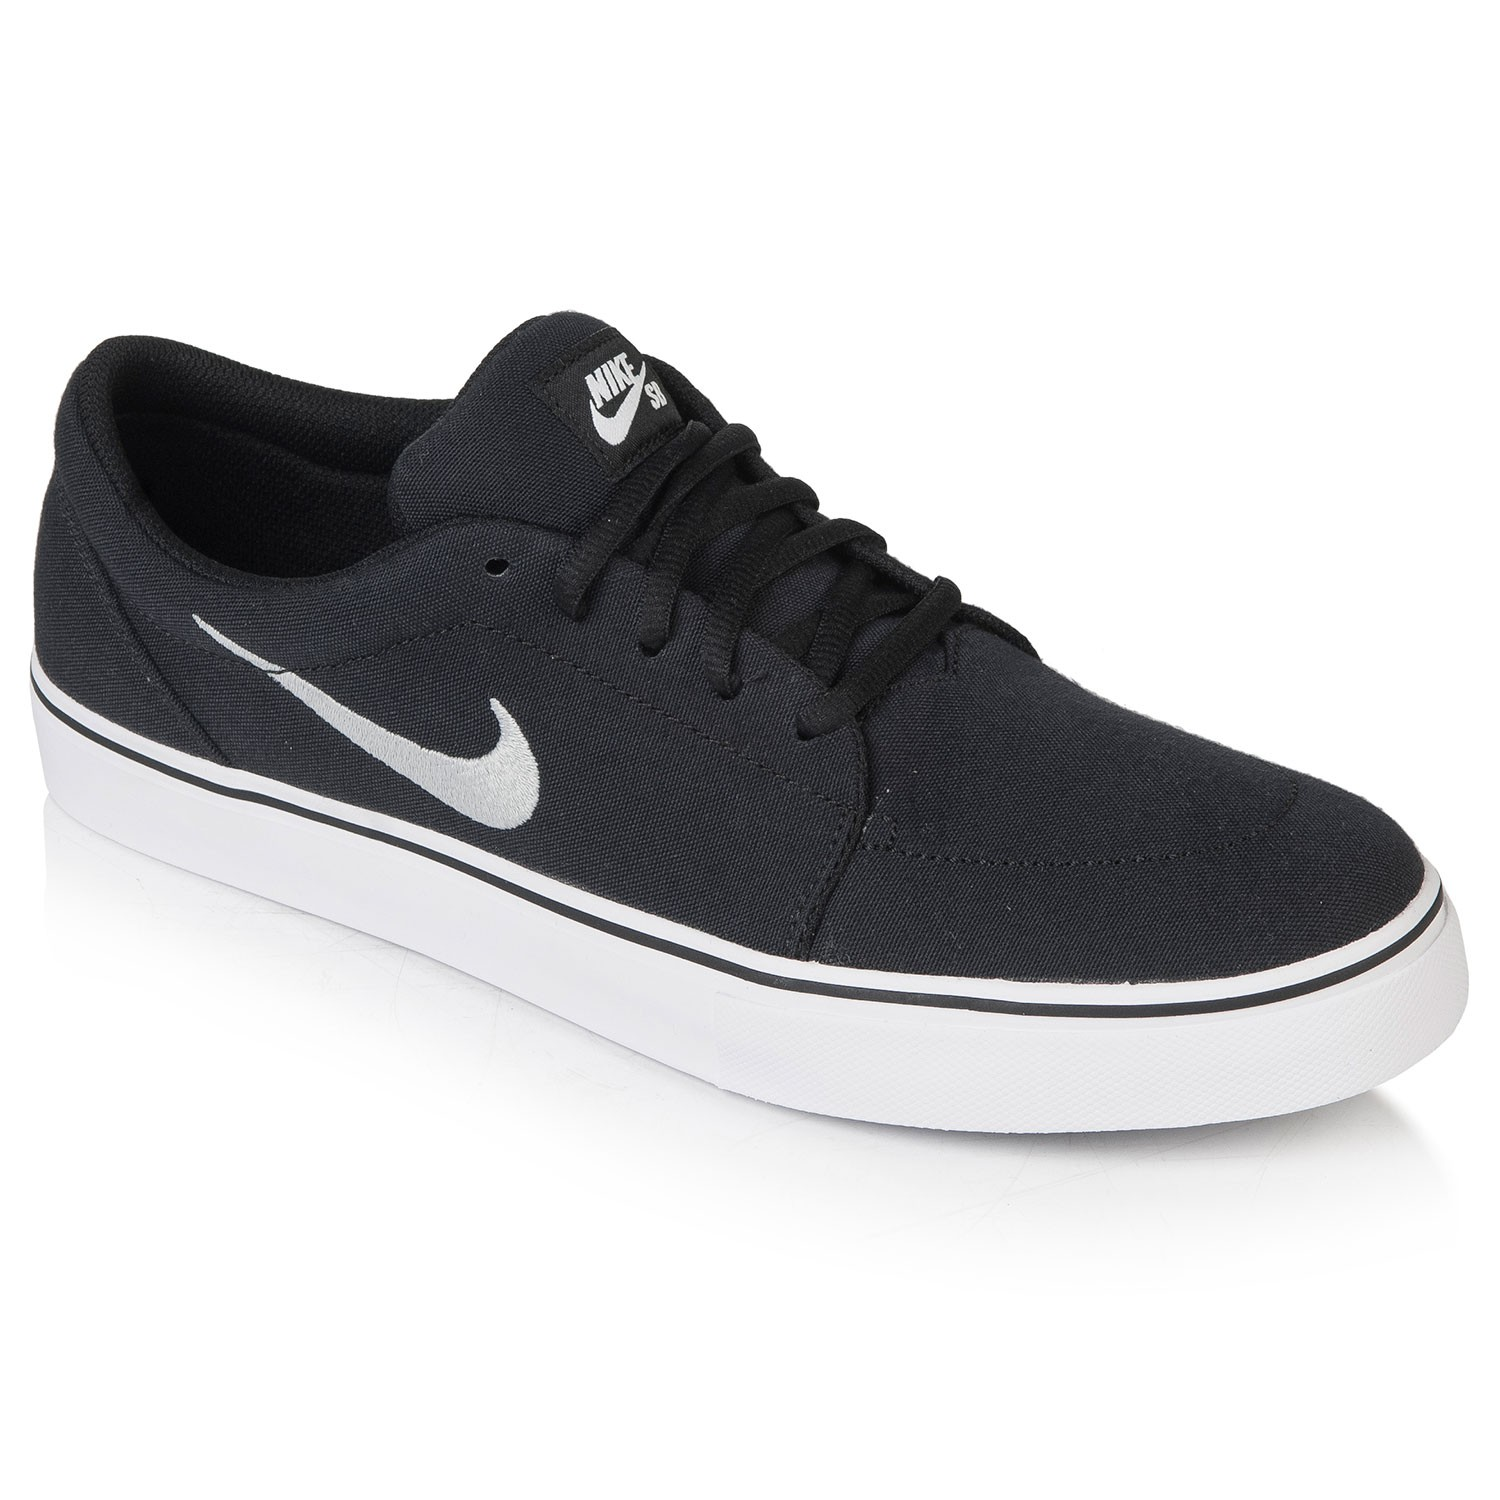 Nike SB Nike Satire Canvas black metalic silver-black  ec67f489e